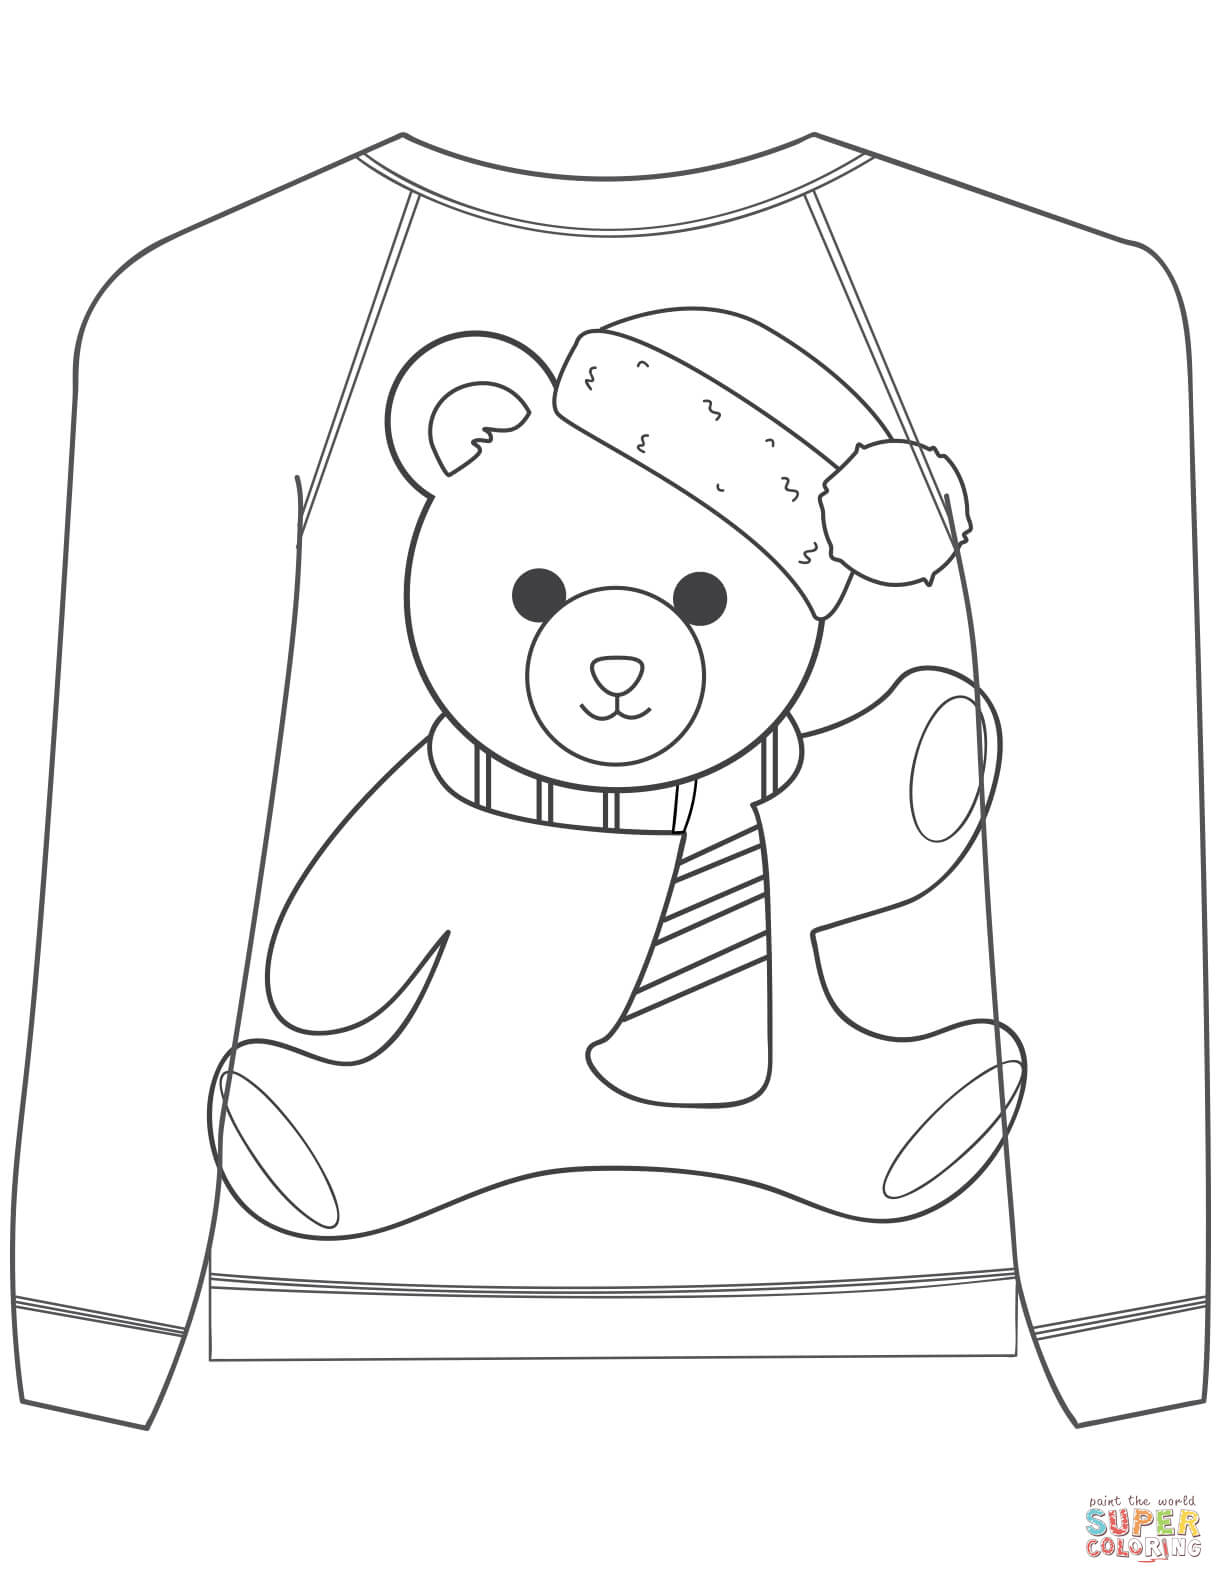 sweater coloring page free ugly christmas sweater coloring pages printable coloring sweater page